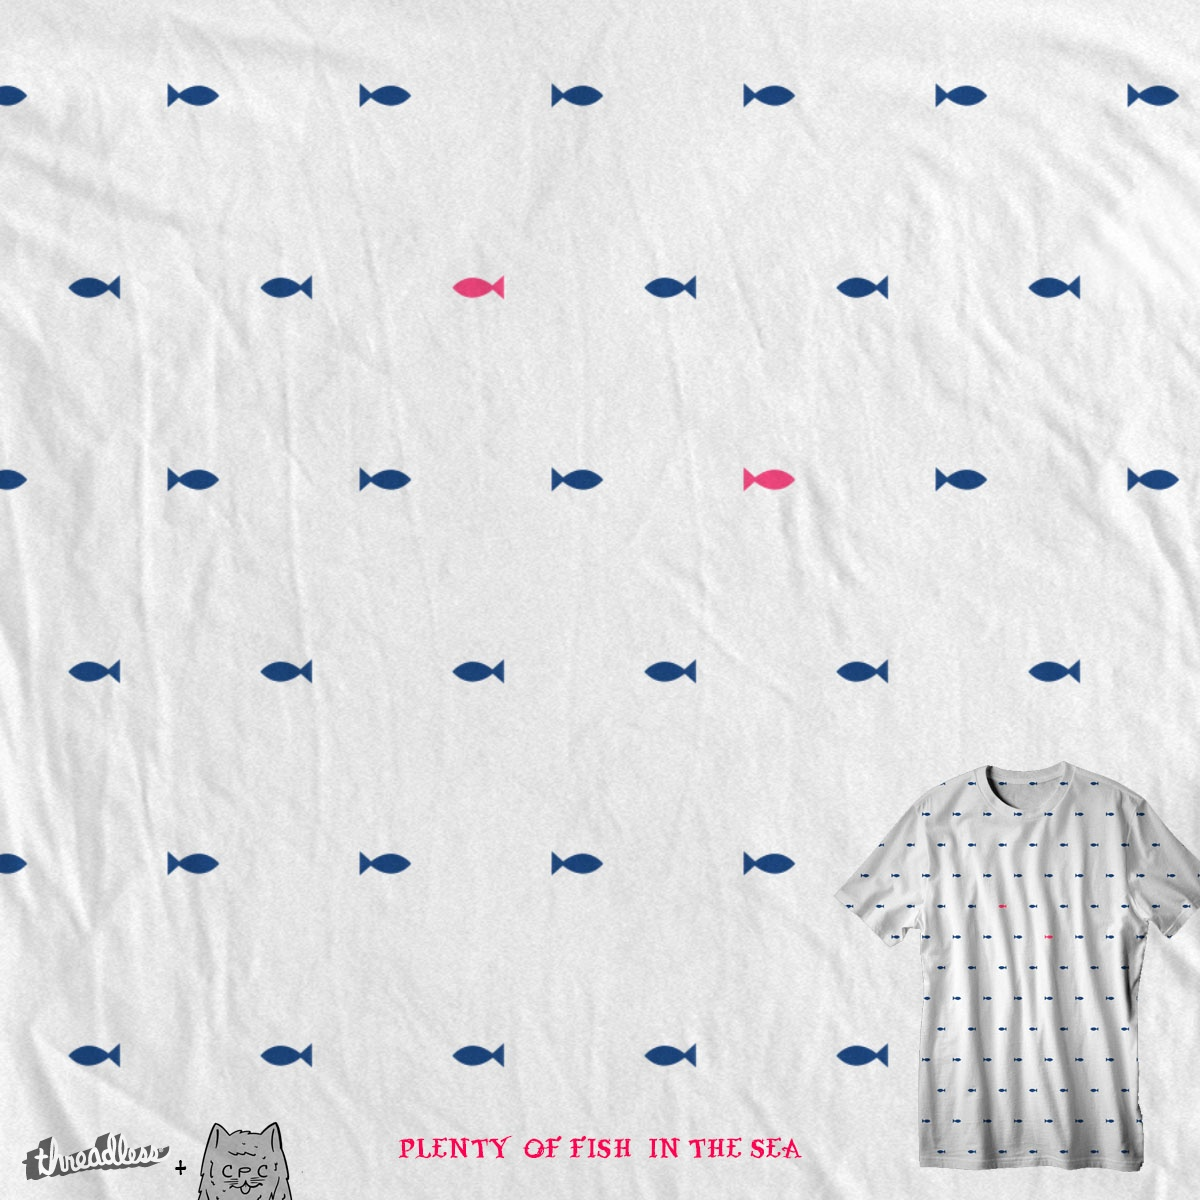 plenty of fish in the sea , a cool t-shirt design